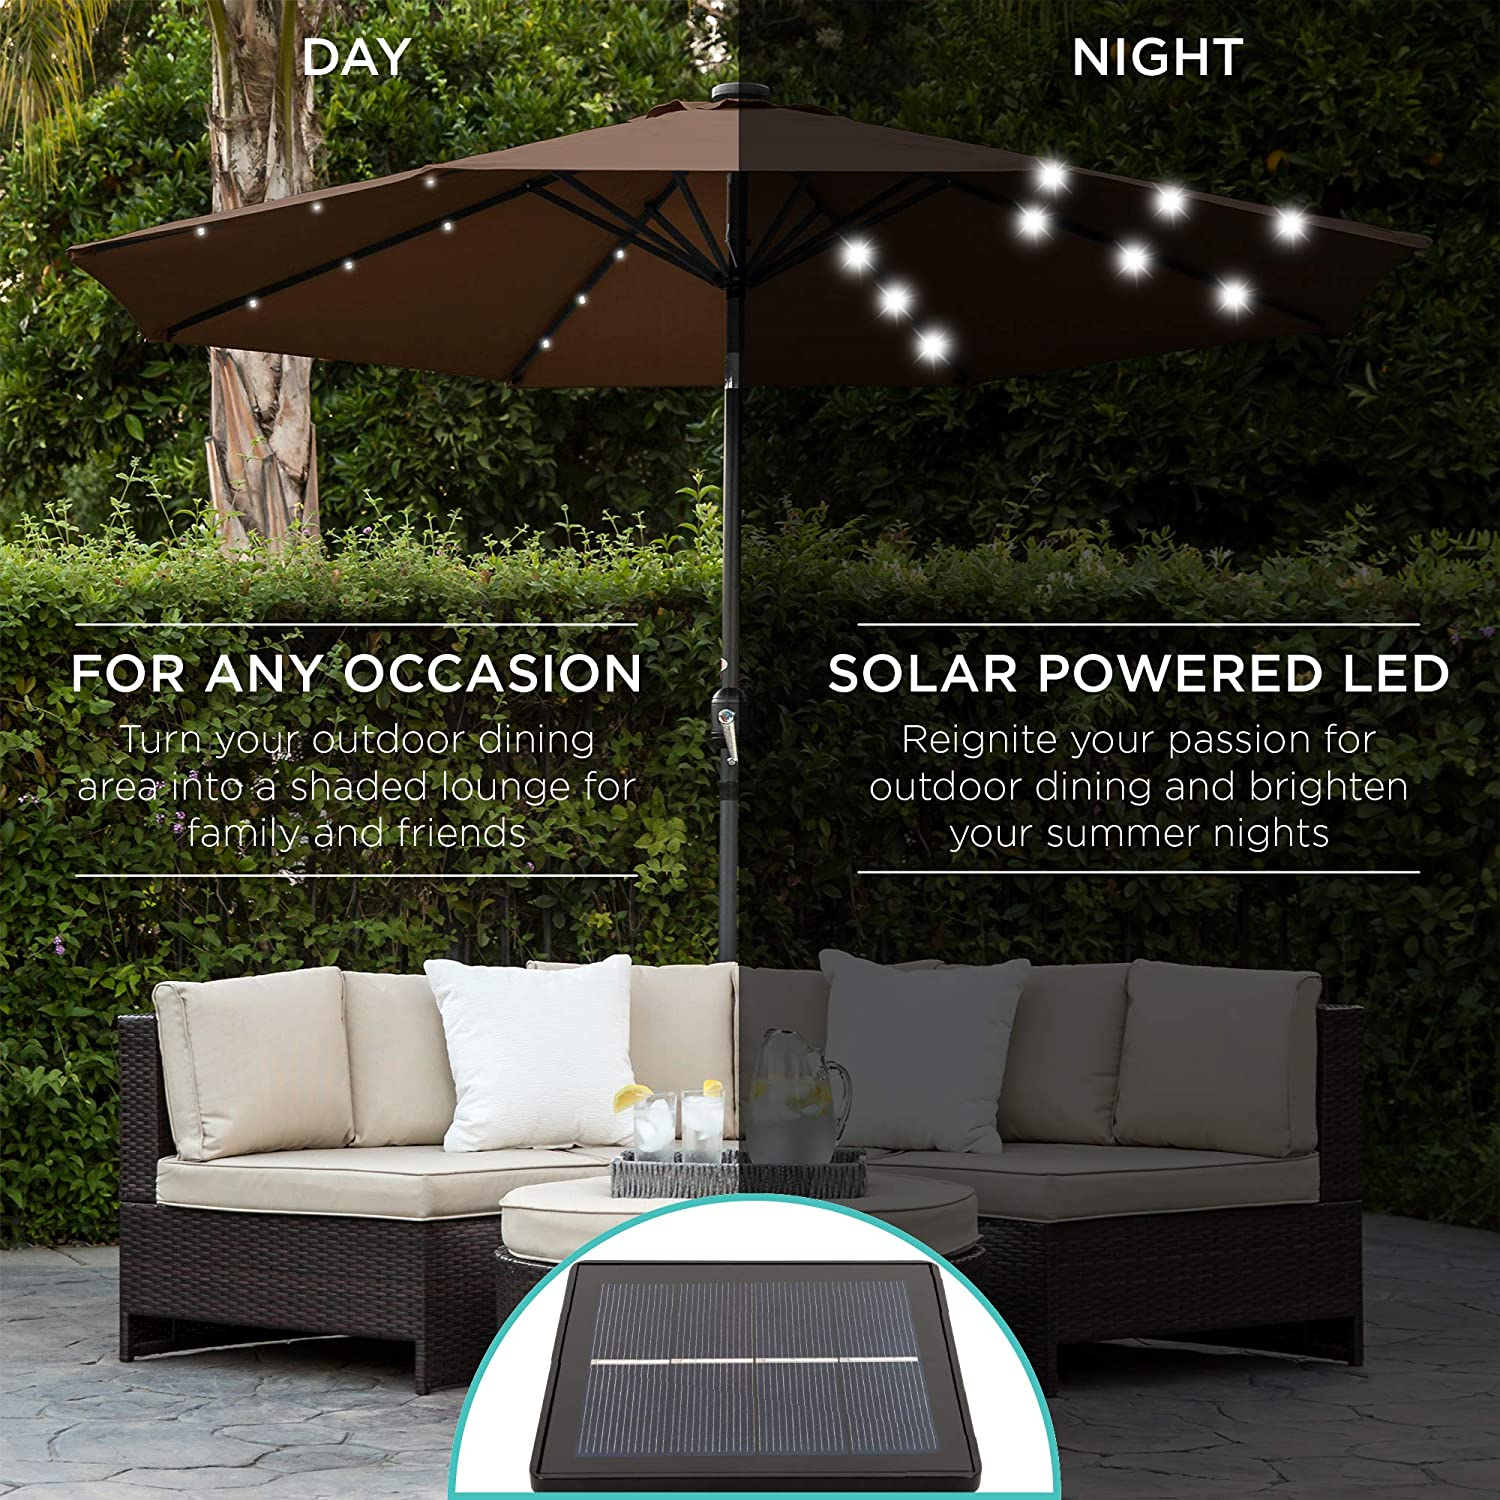 Fade-Resistant Fabric Black Best Choice Products 10ft Solar LED Lighted Patio Umbrella w//Tilt Adjustment